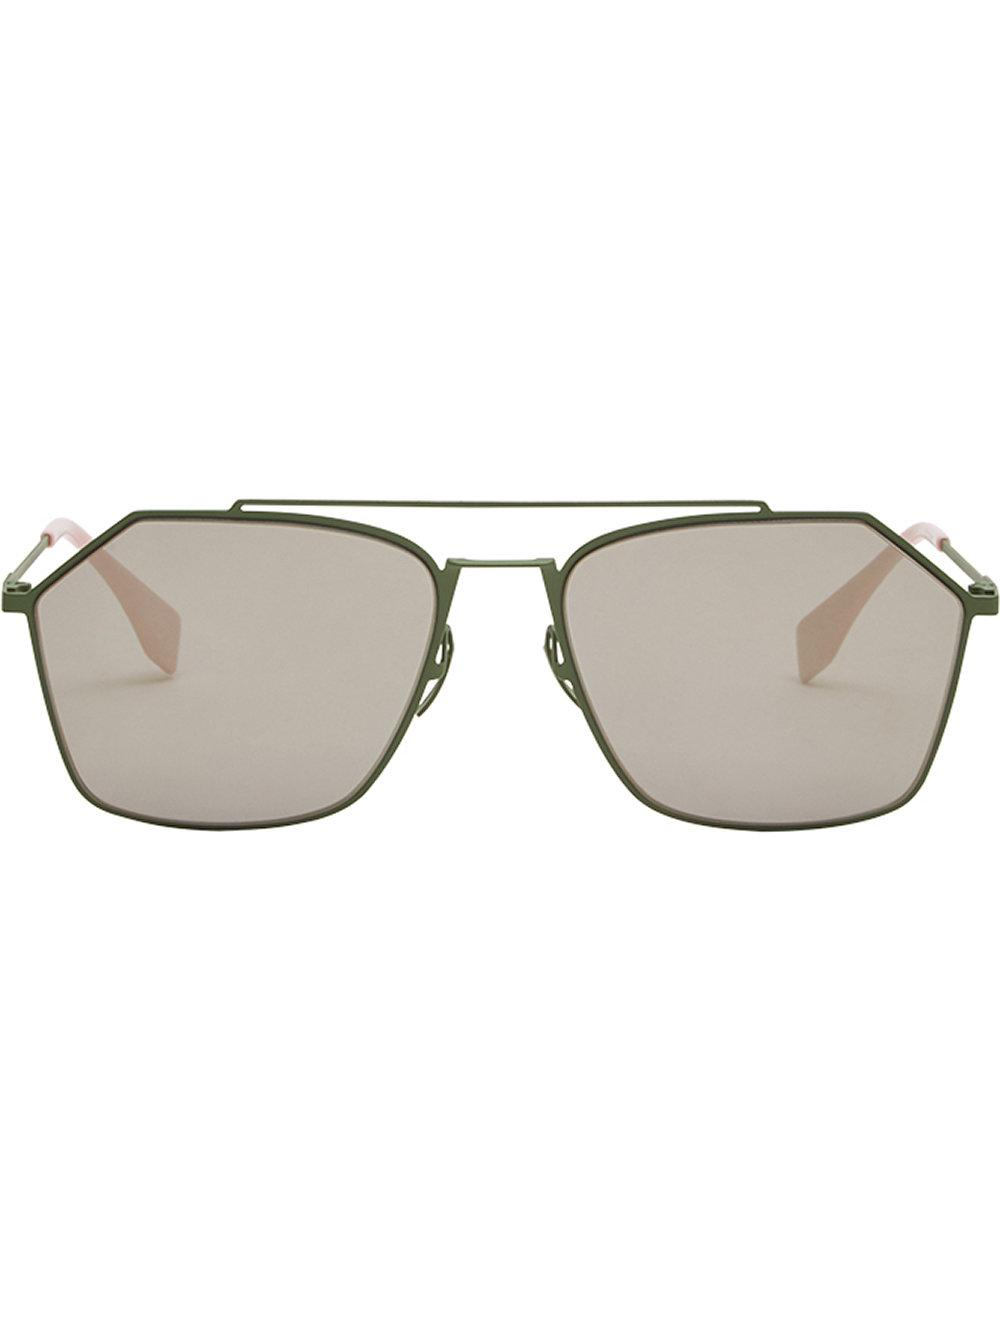 b5f4c238f8c7 Fendi Eyewear Air Sunglasses - Green. Farfetch